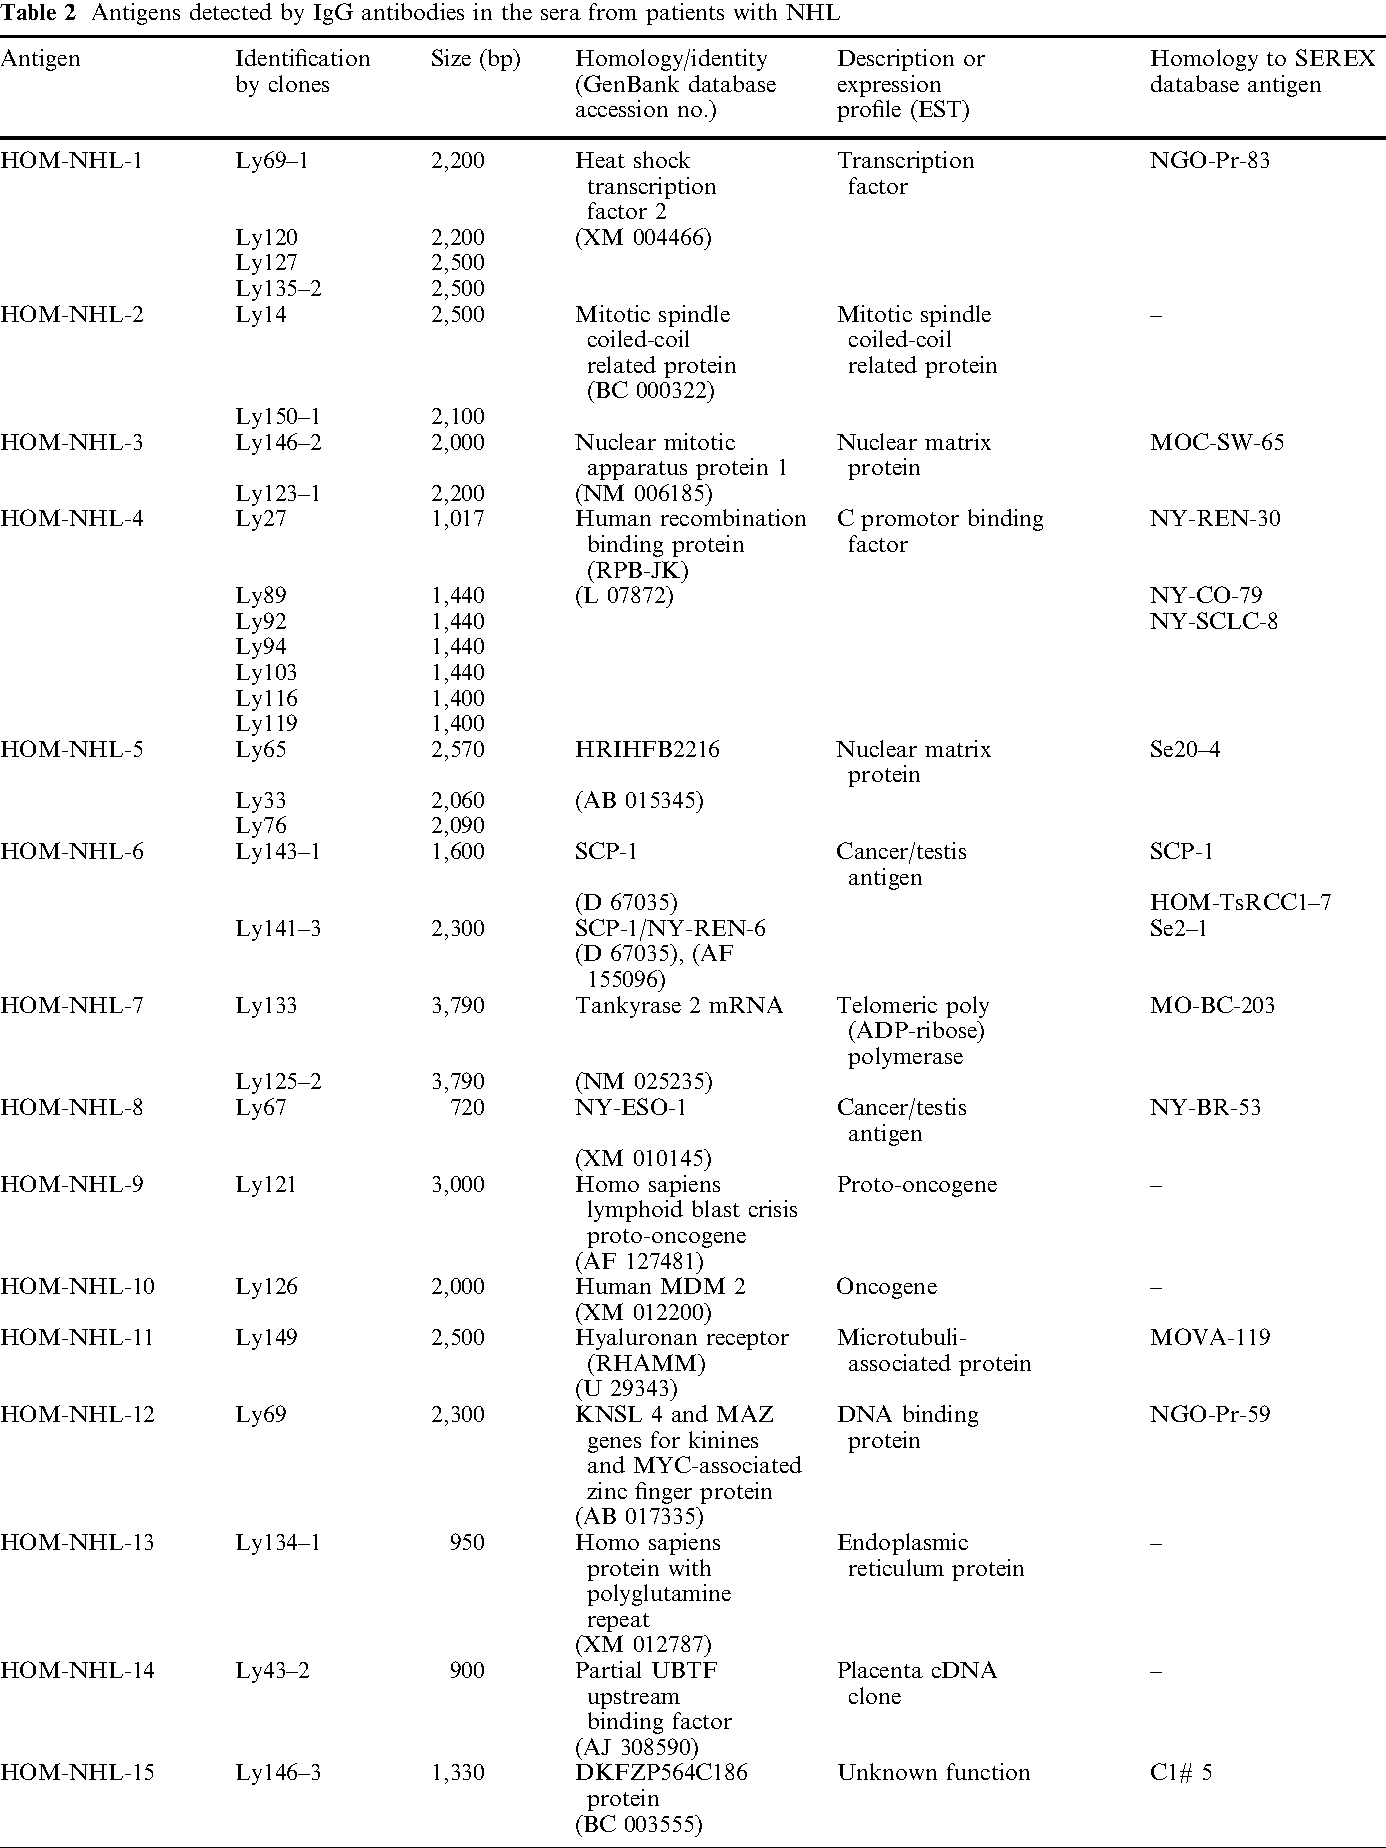 Analysis of the antibody repertoire of lymphoma patients